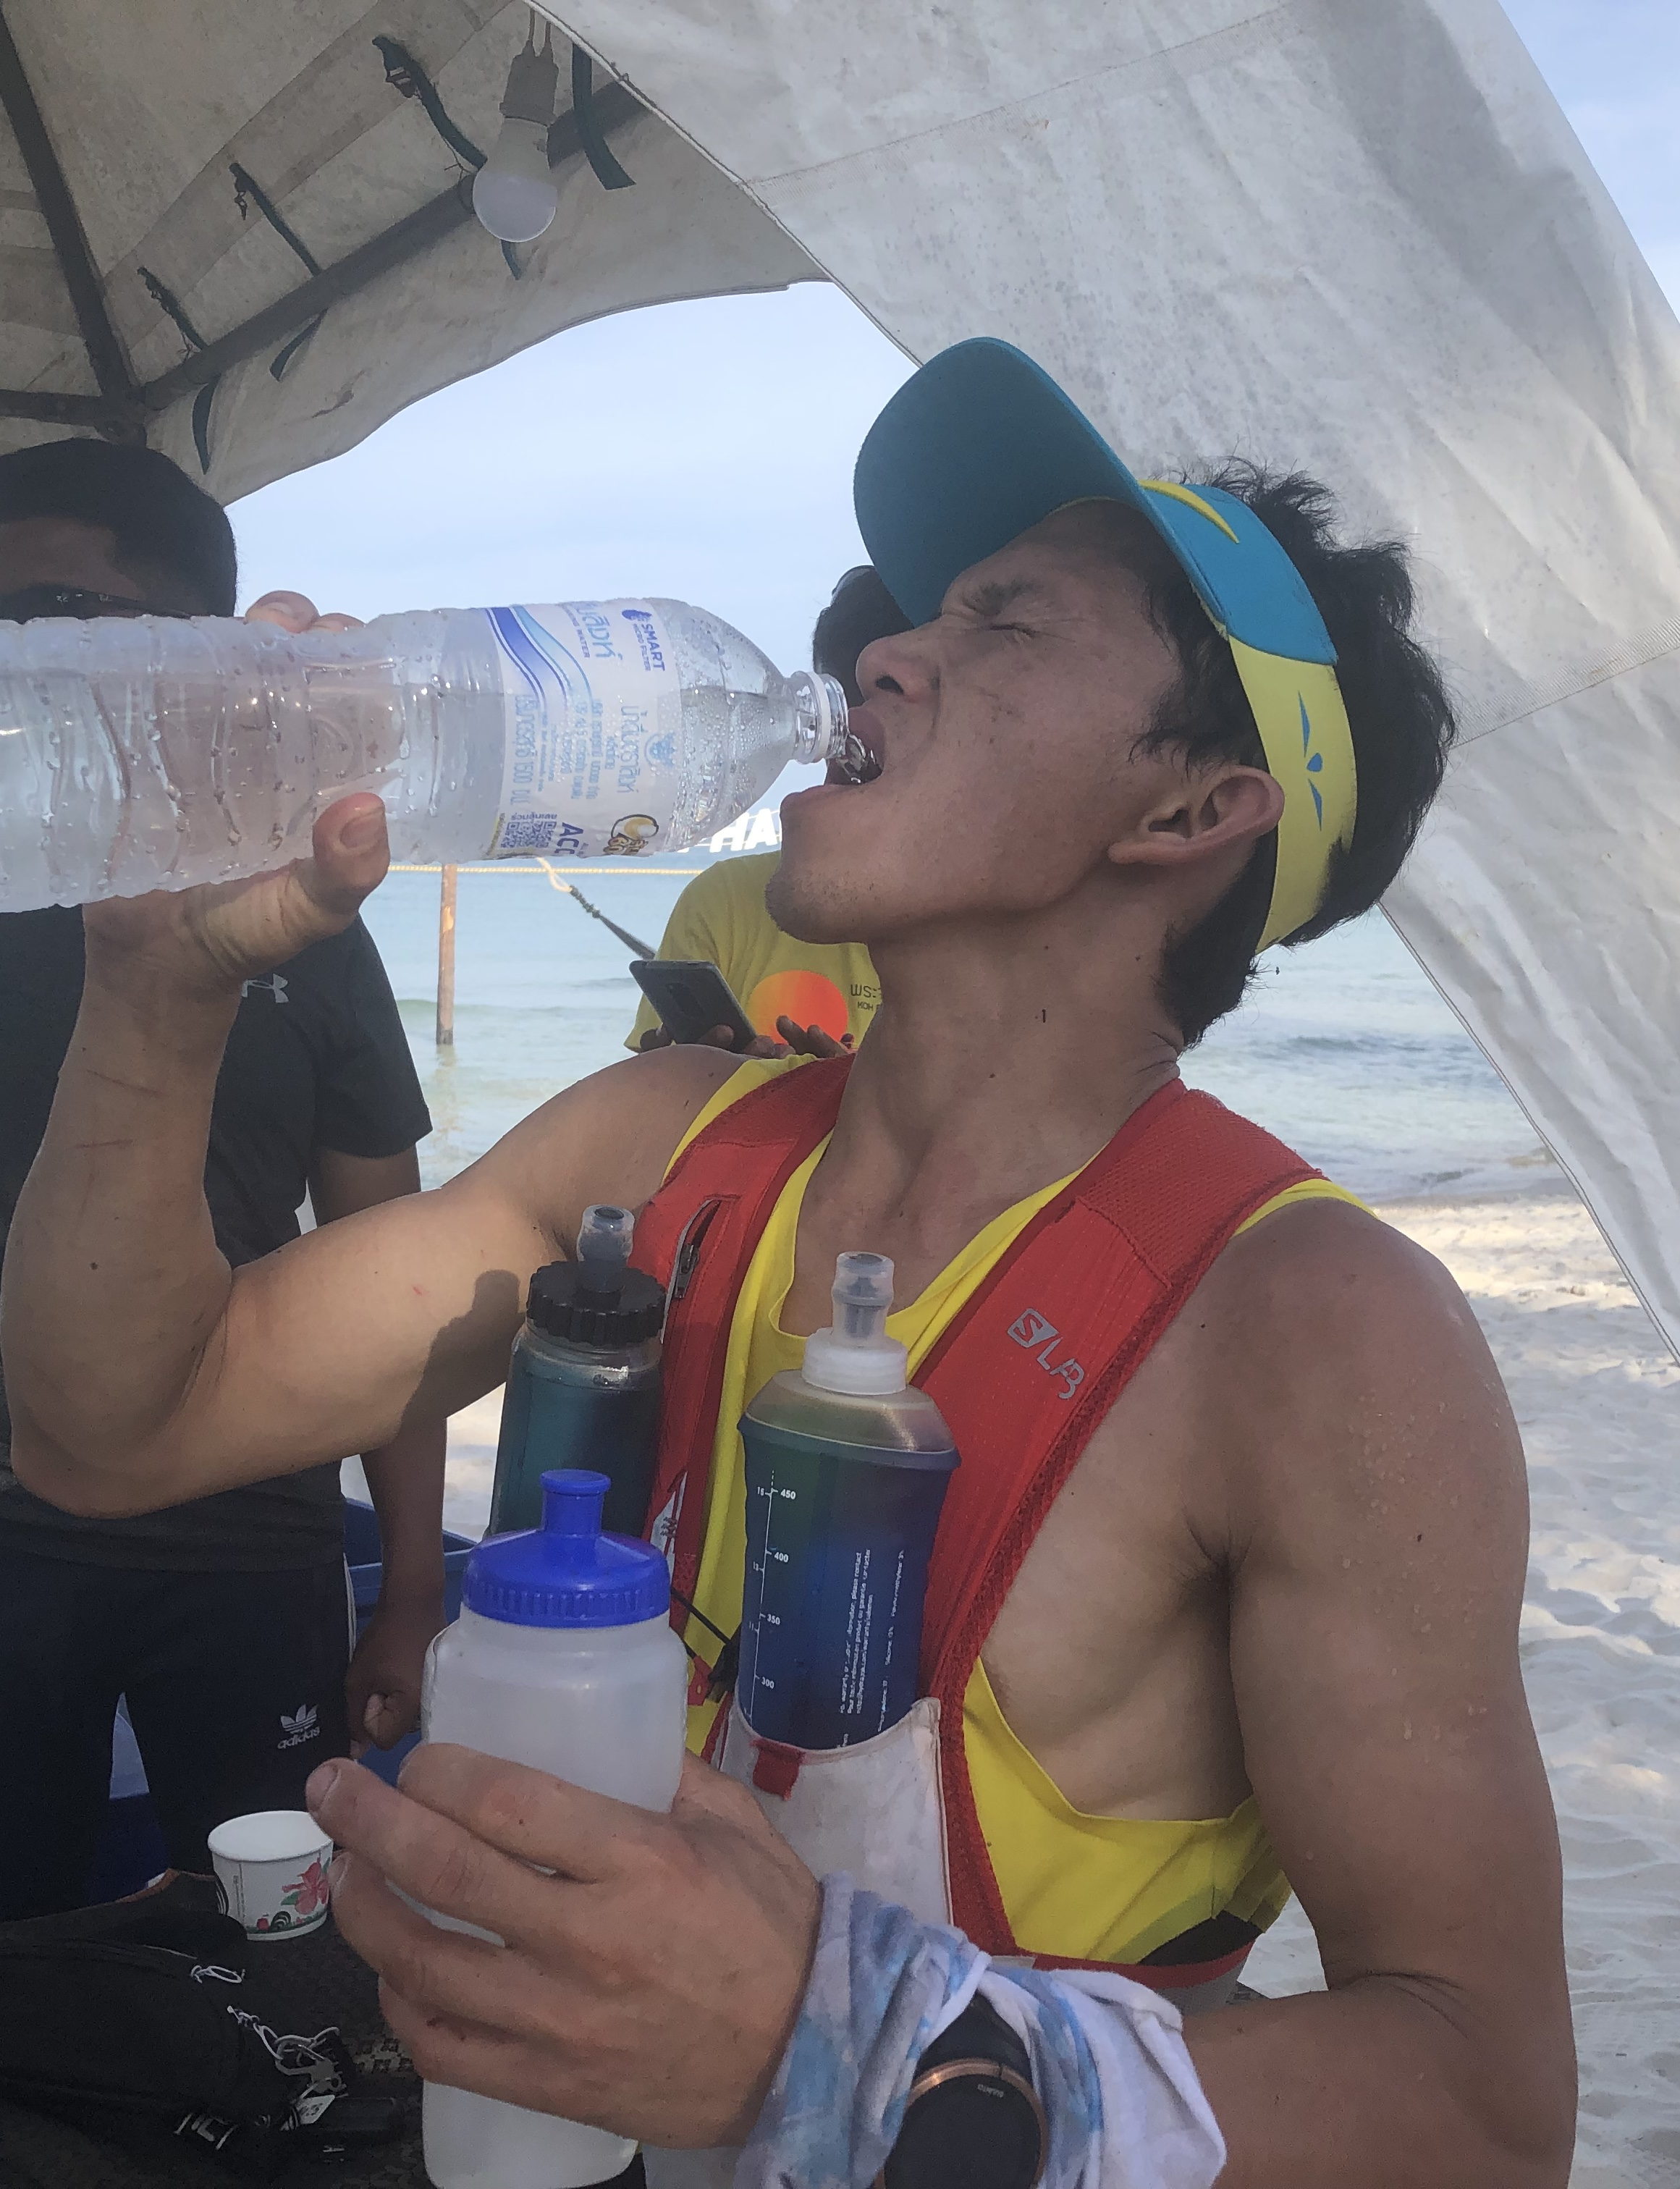 One could not drink enough during the very hot race, but salt tables were just as necessary!